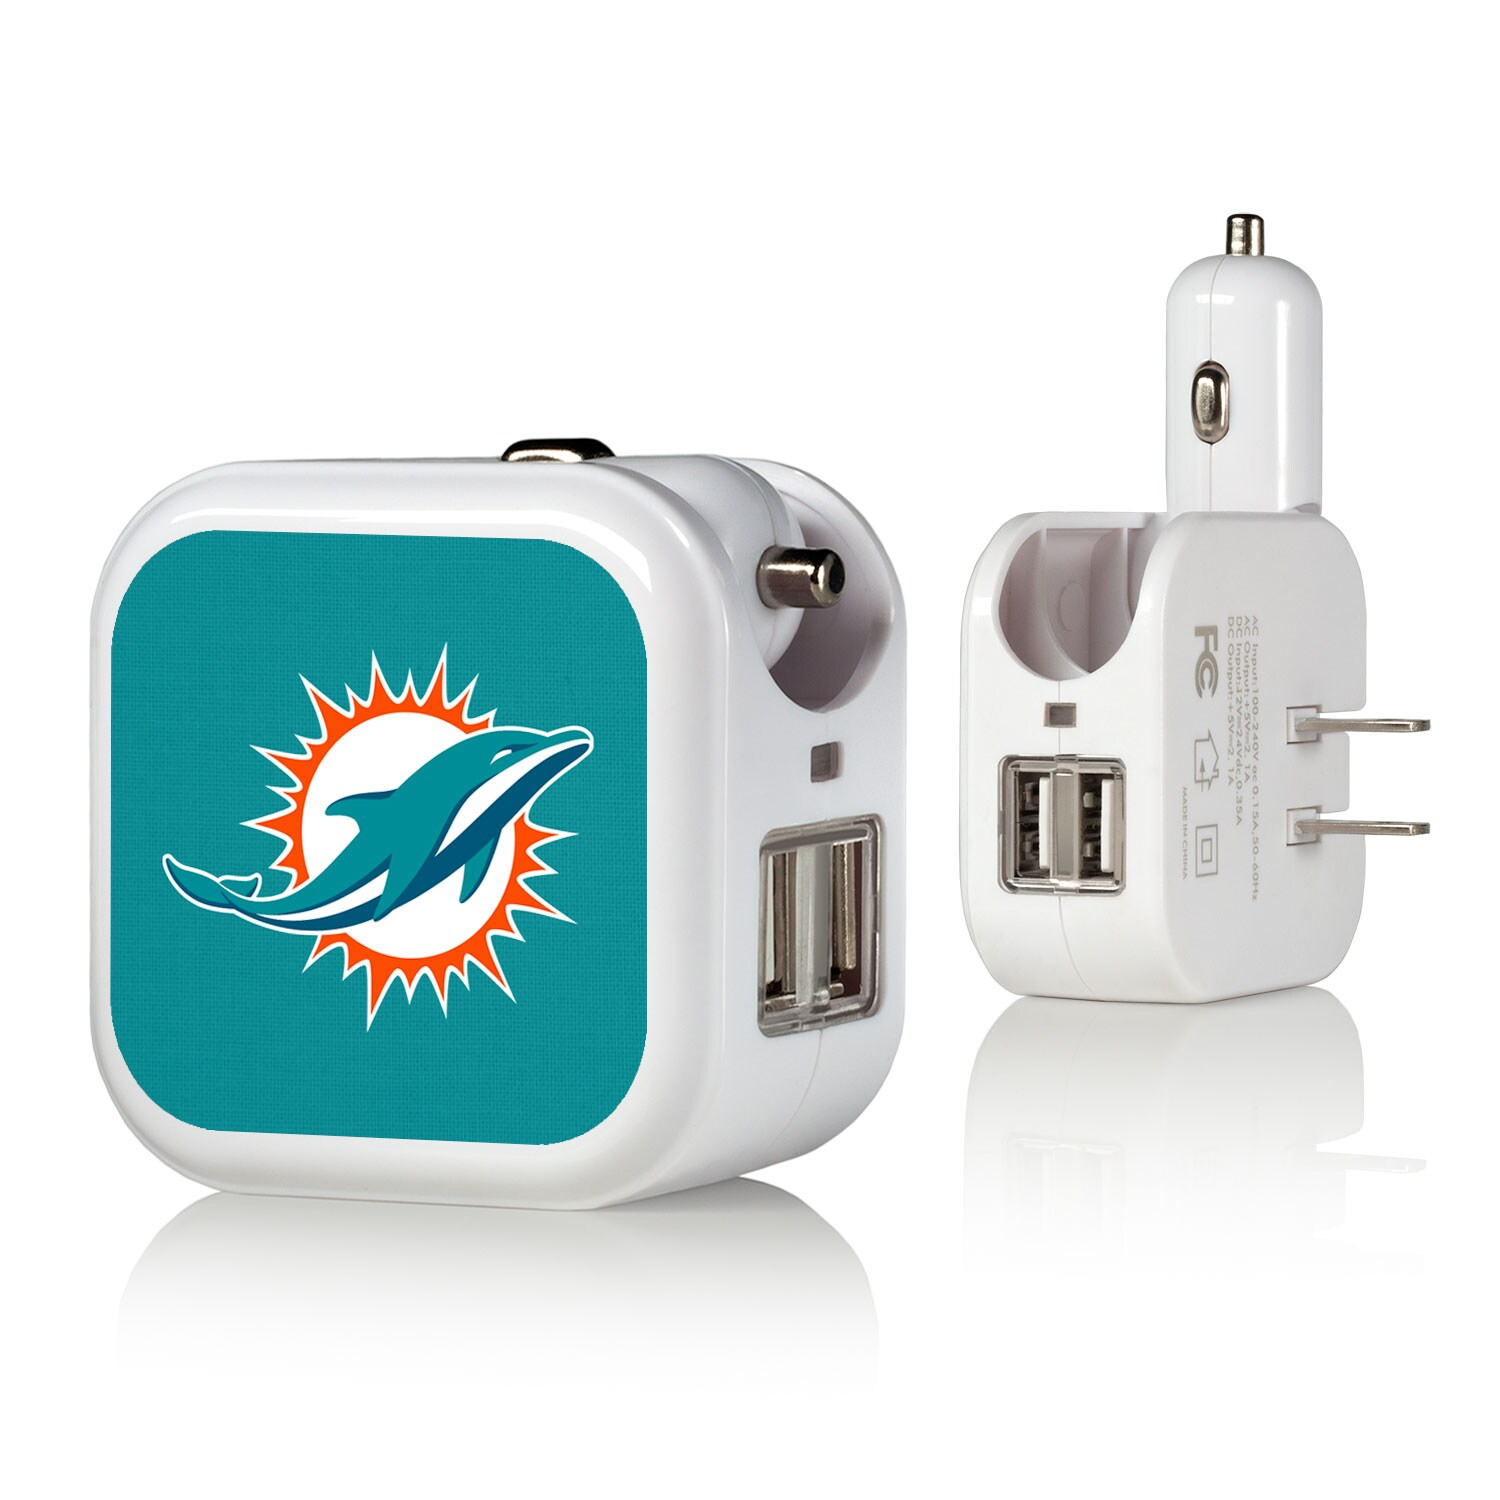 Miami Dolphins Solid Design USB Charger